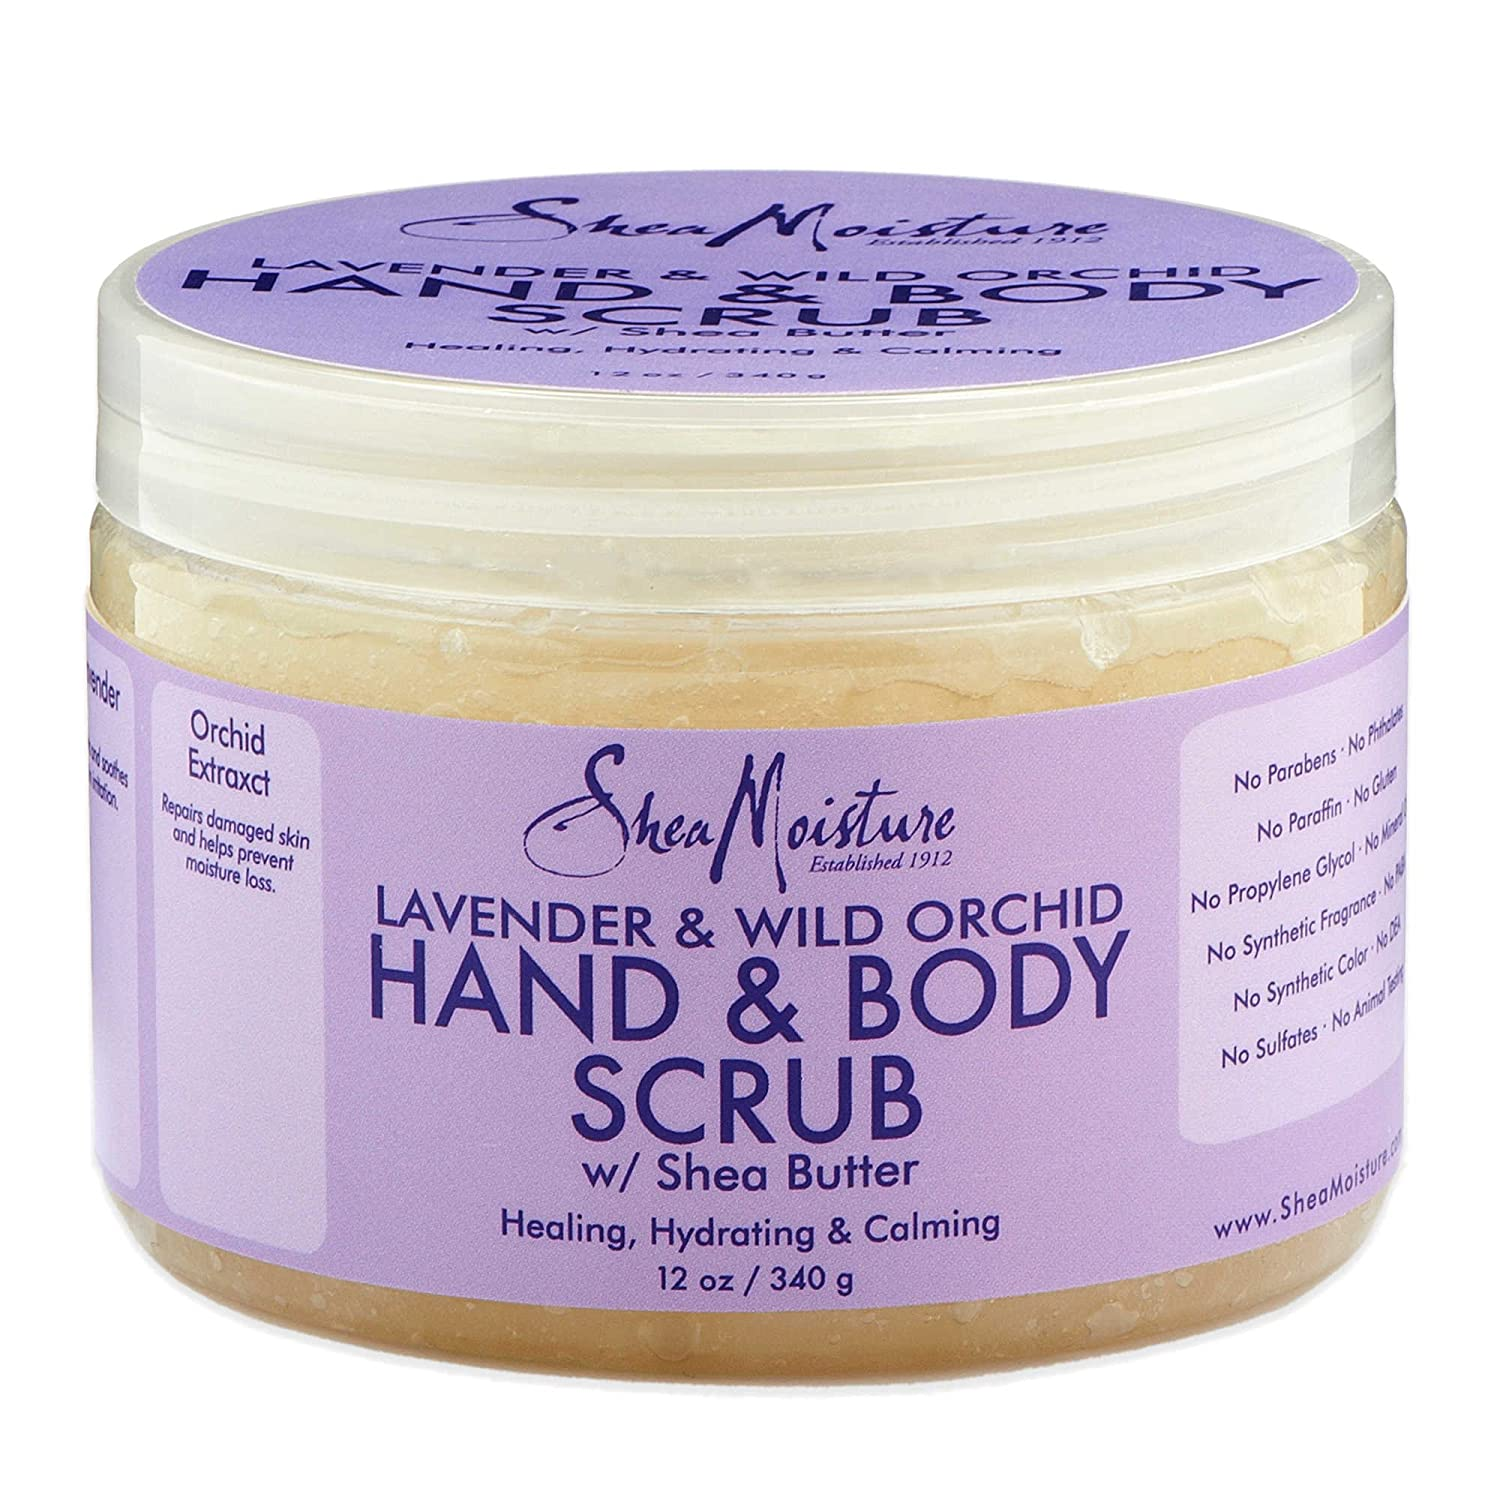 Shea Moisture 12 Oz. Hand And Body Scrub In Lavender And Wild Orchid